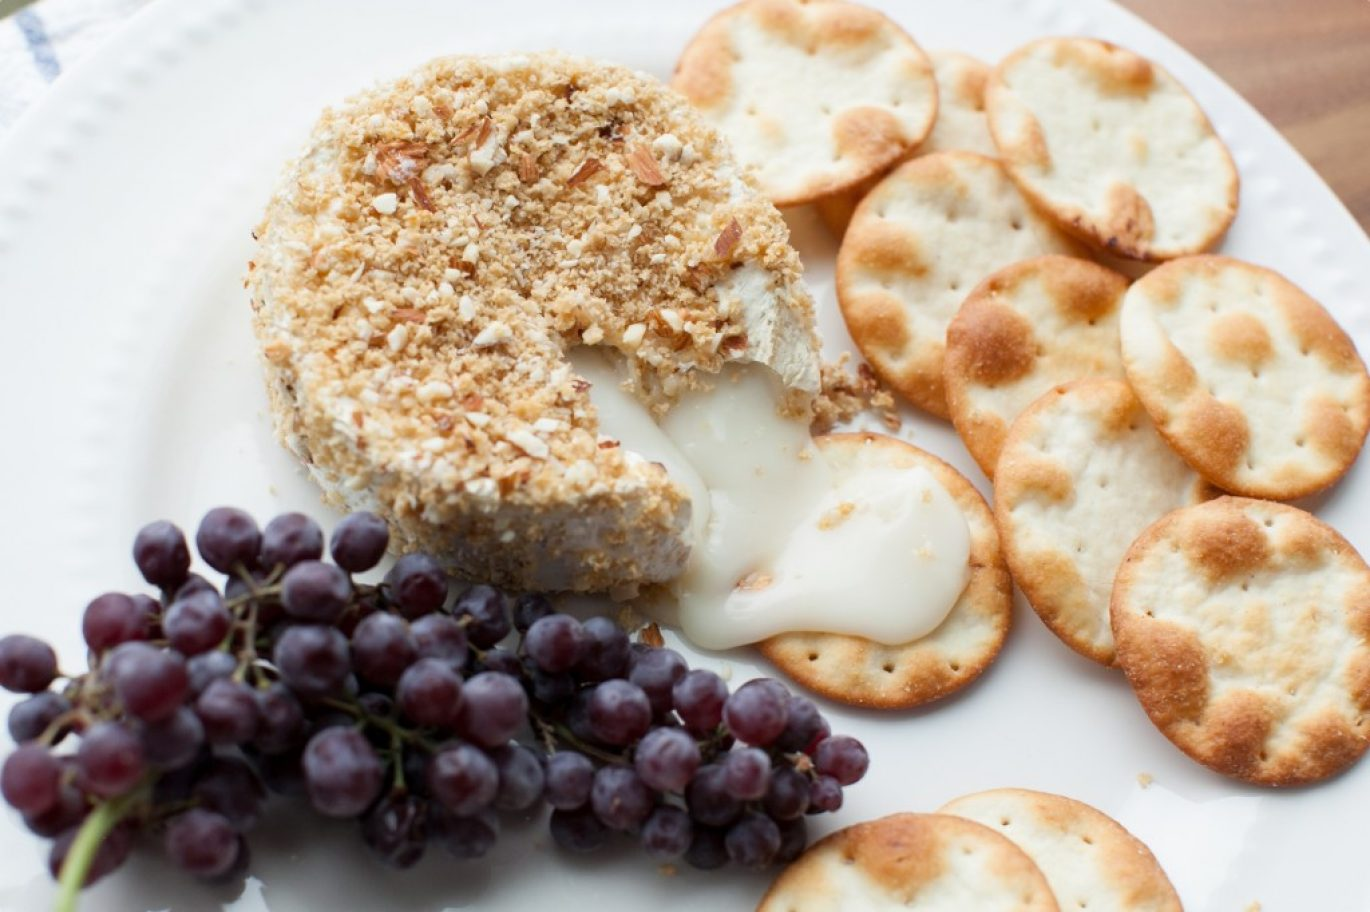 Goat Cheese Baked Brie with Crushed Almond Crust